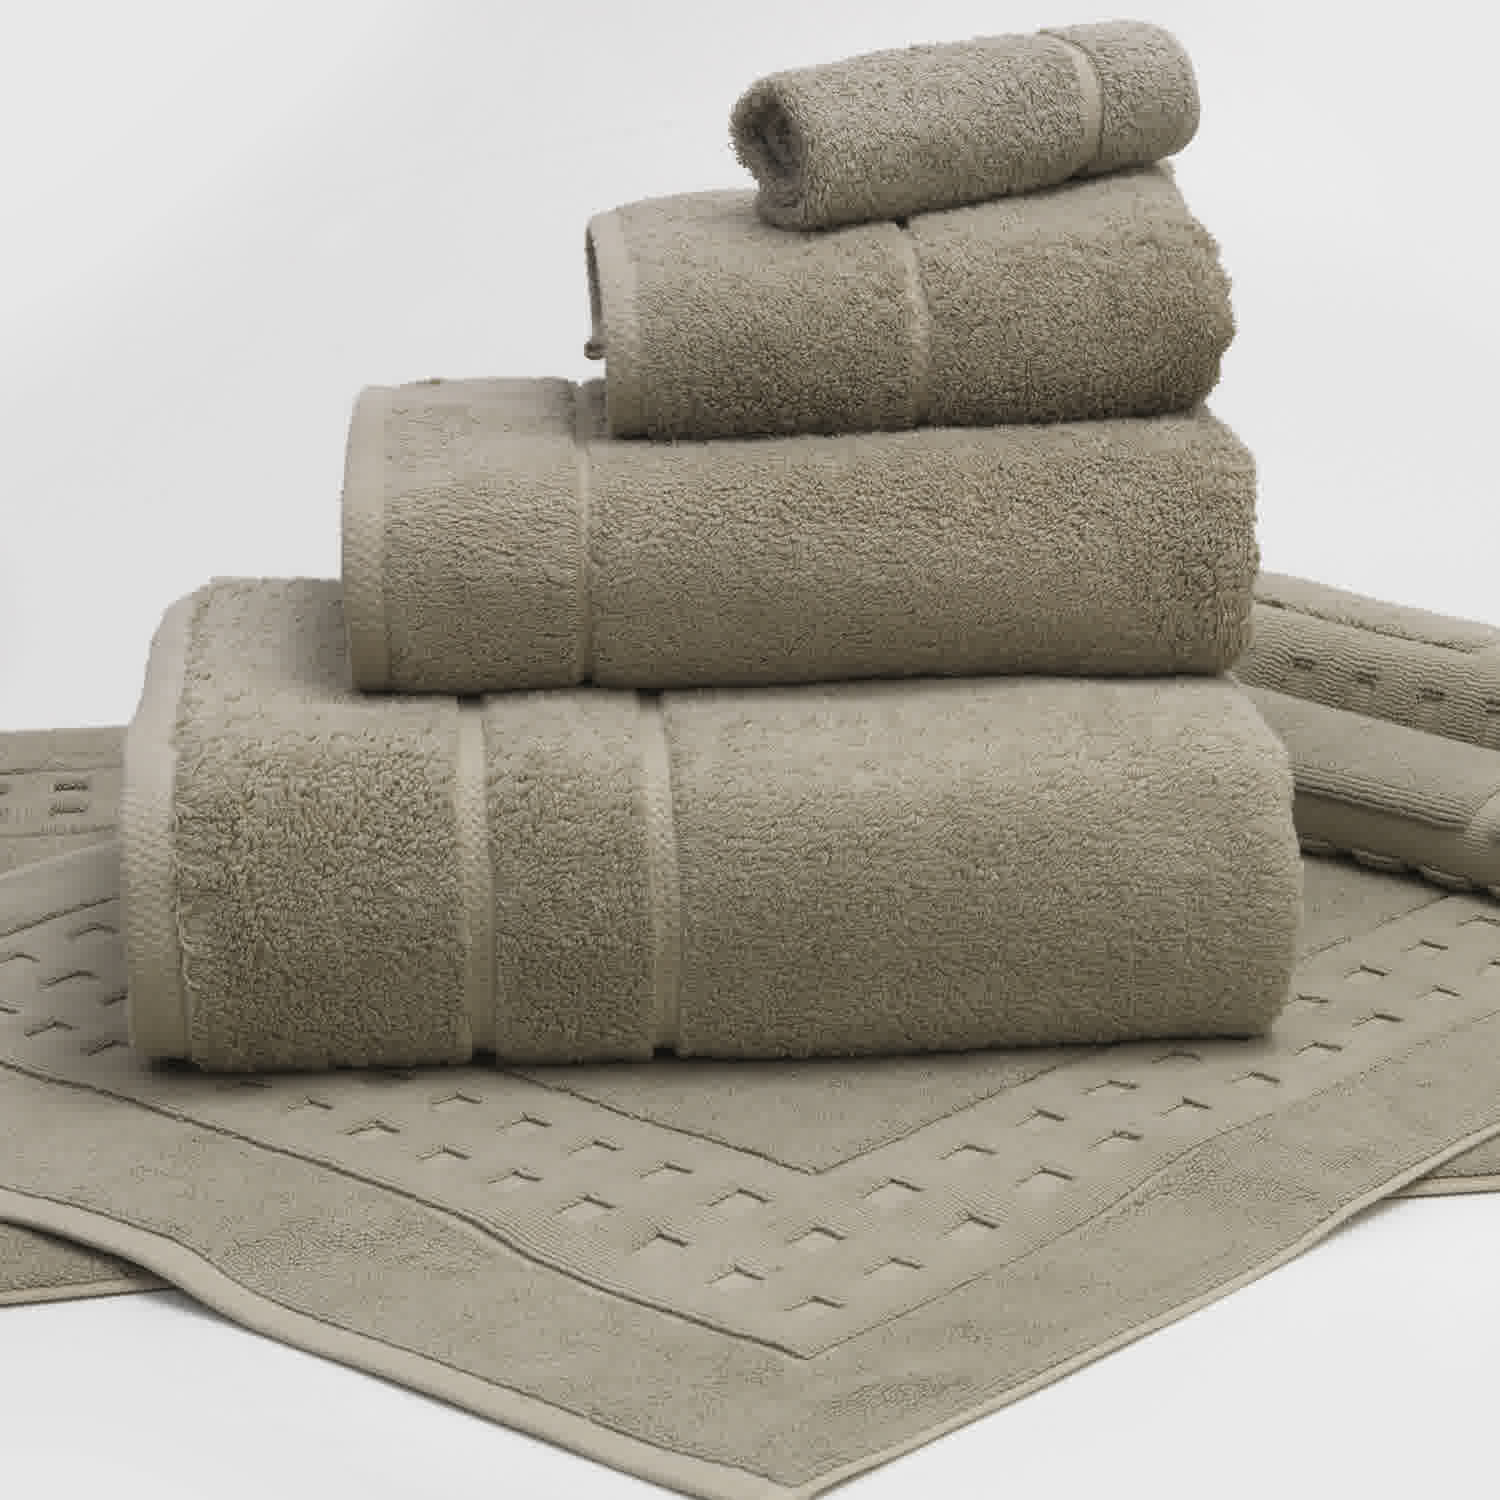 82e83f0d19 710 GSM Platinum Range – Jenev wholesale Towels and related goods